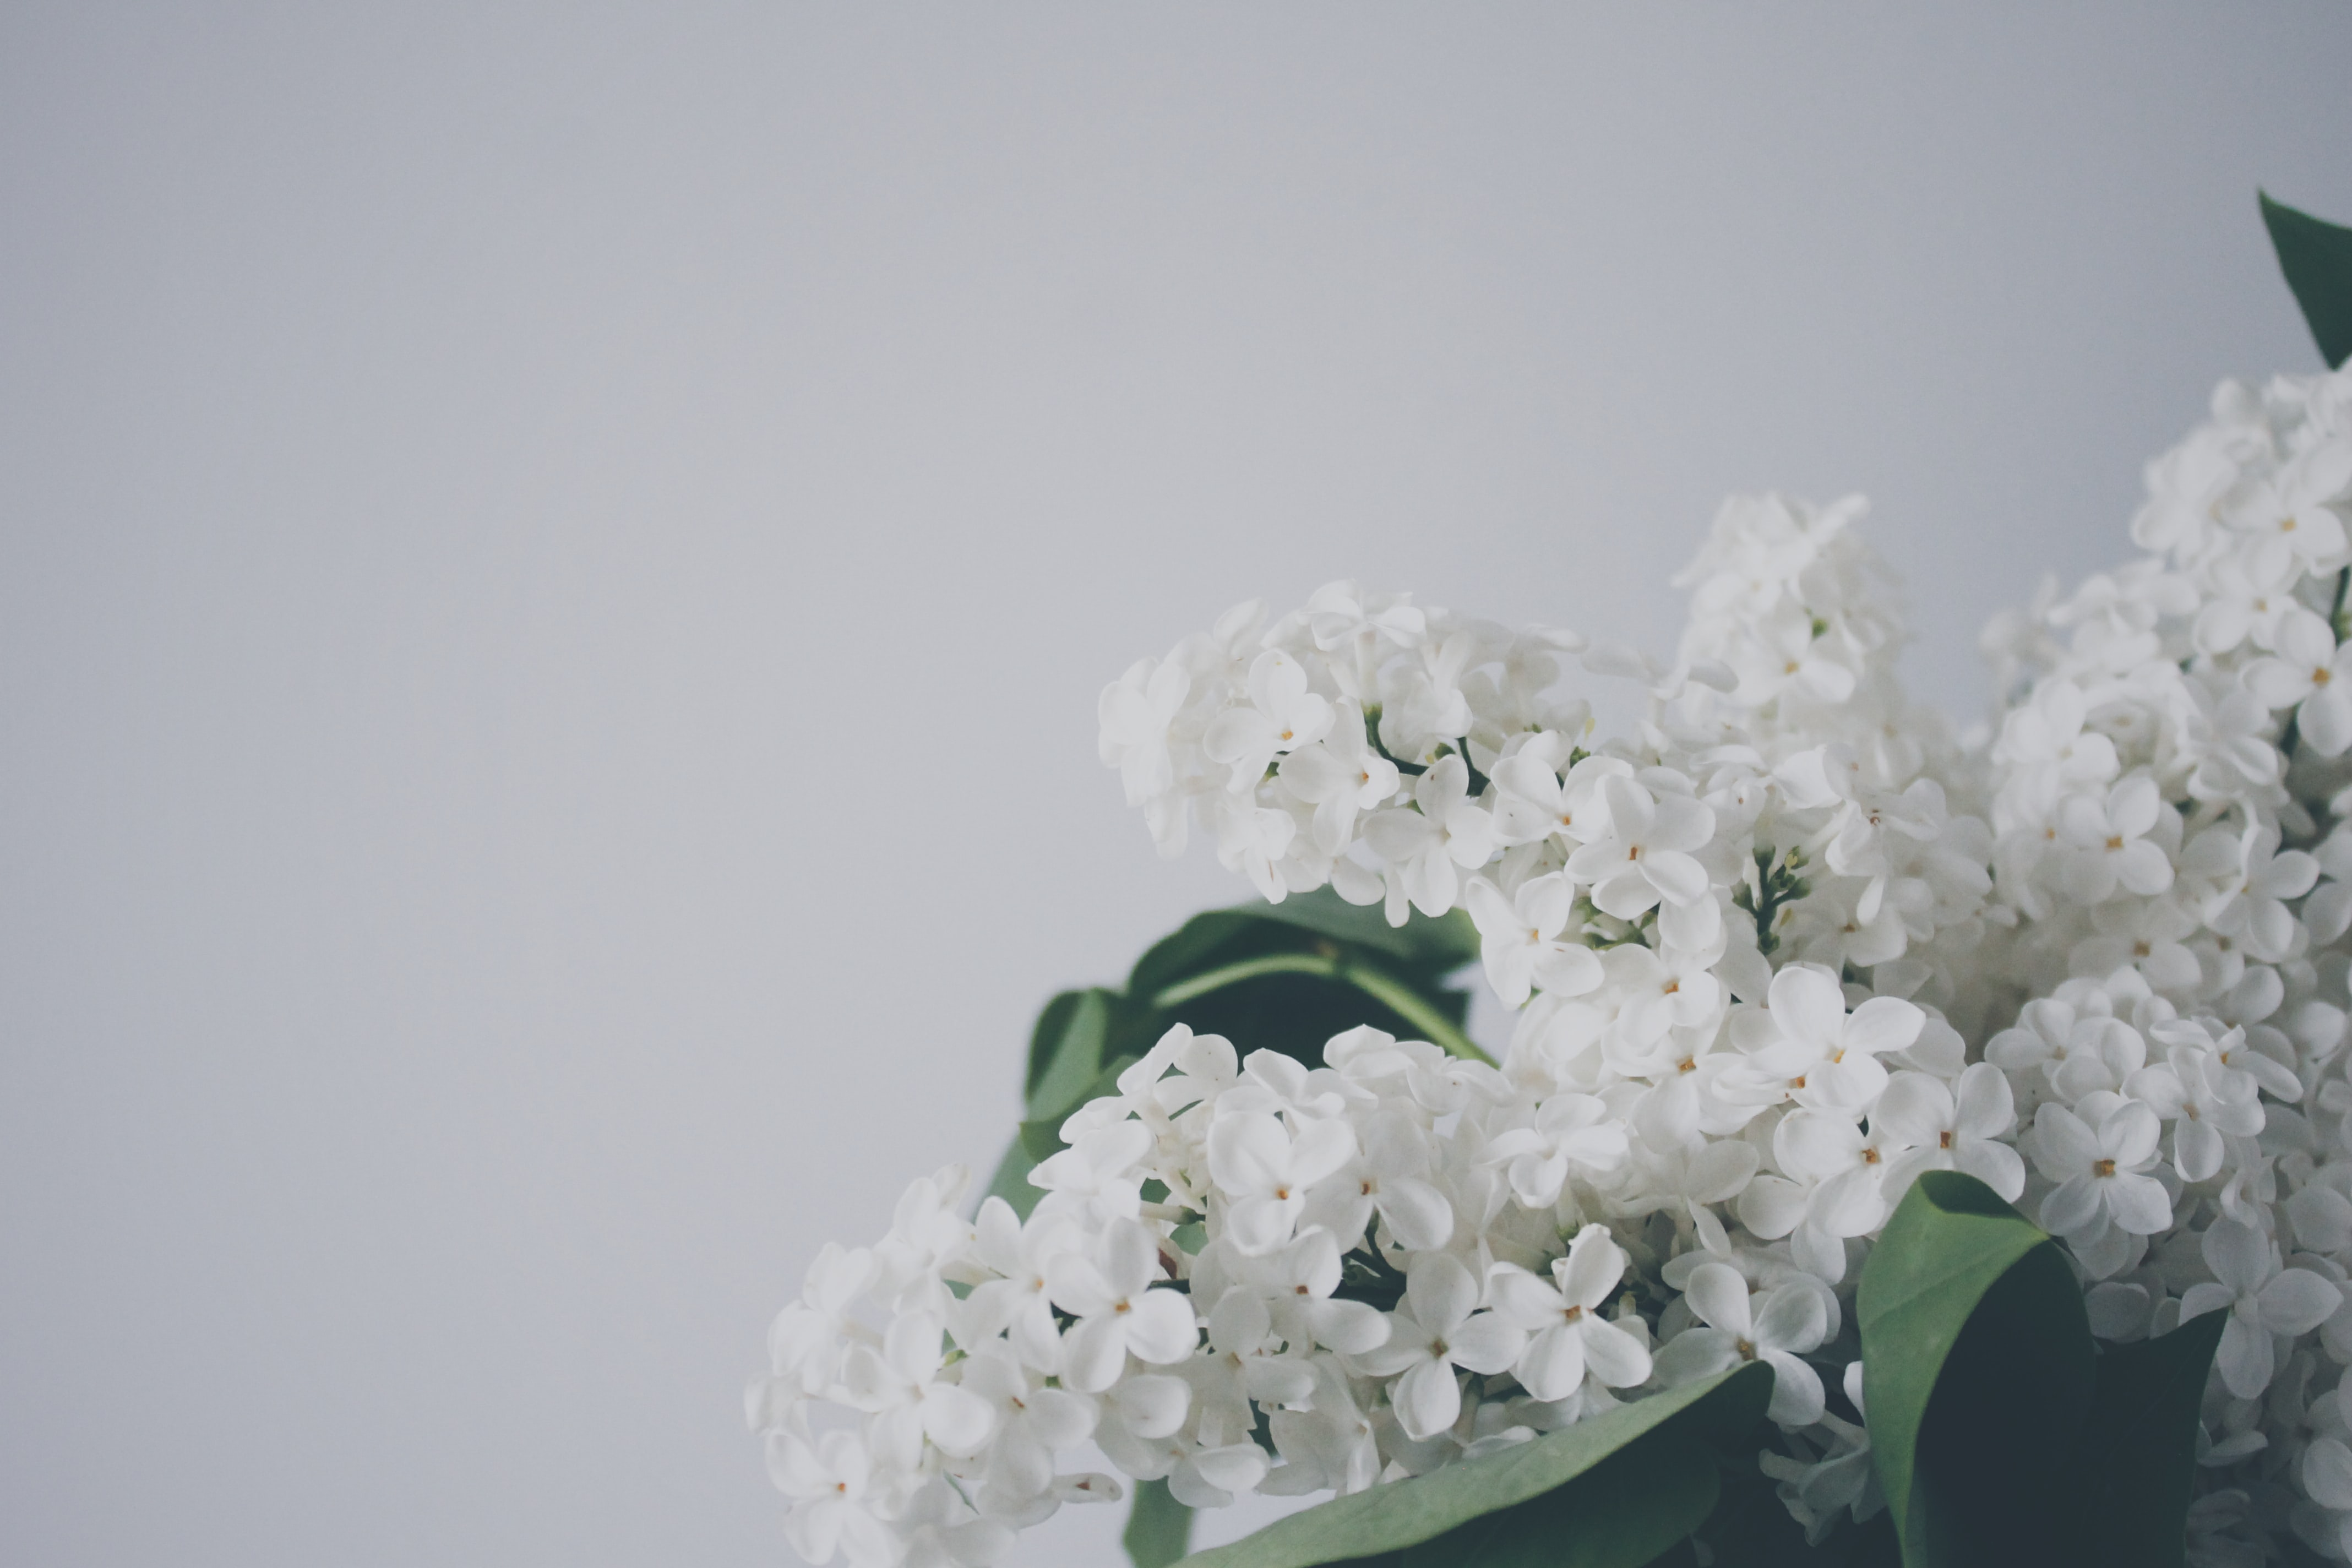 A close-up of white lilac flowers against a pale background